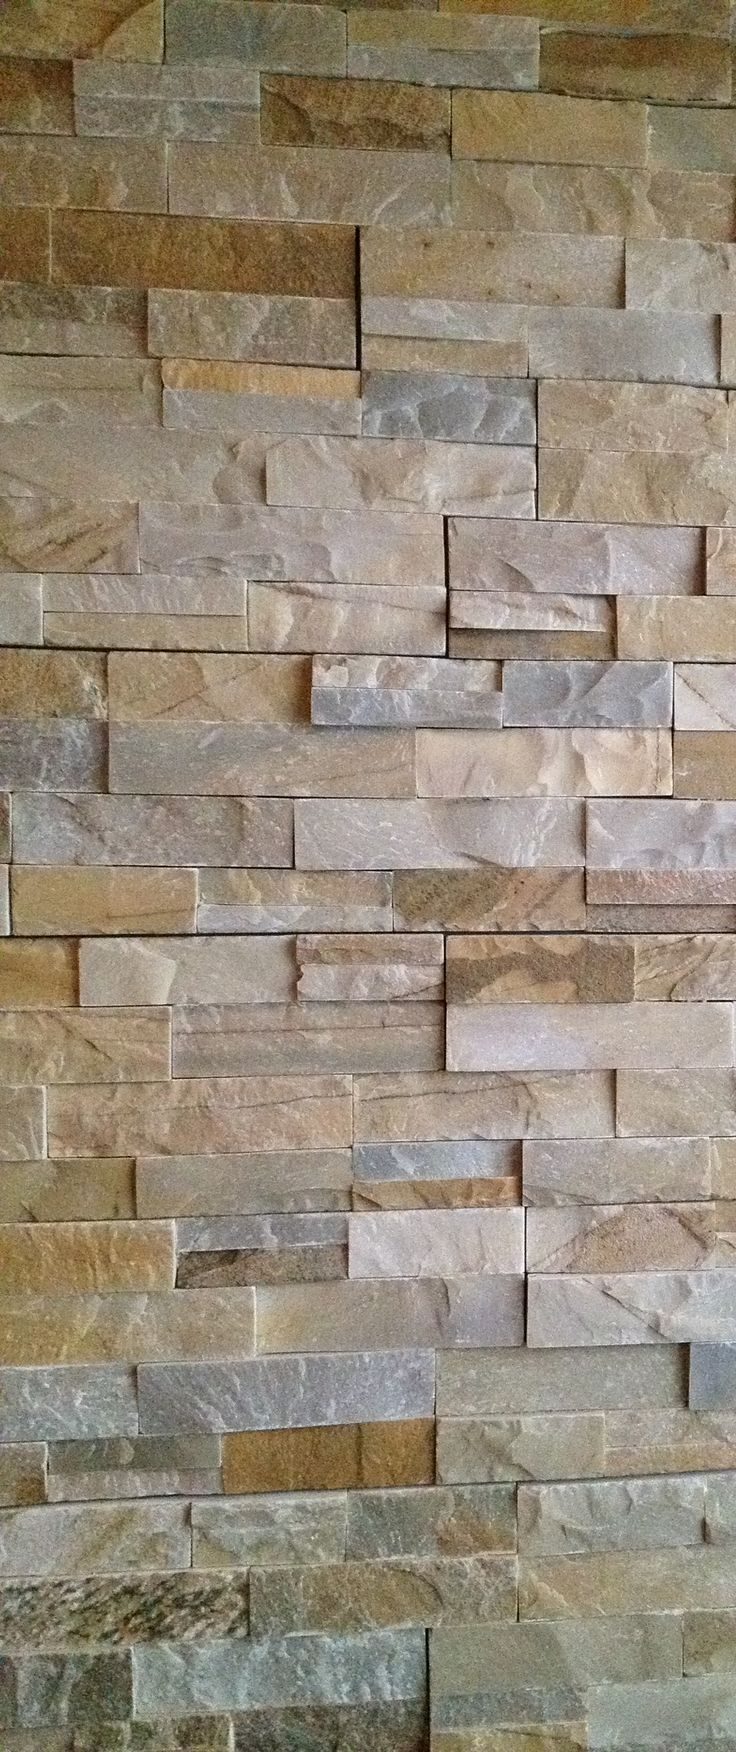 desert quartz ledgestone natural stone wall tile 6x14 398